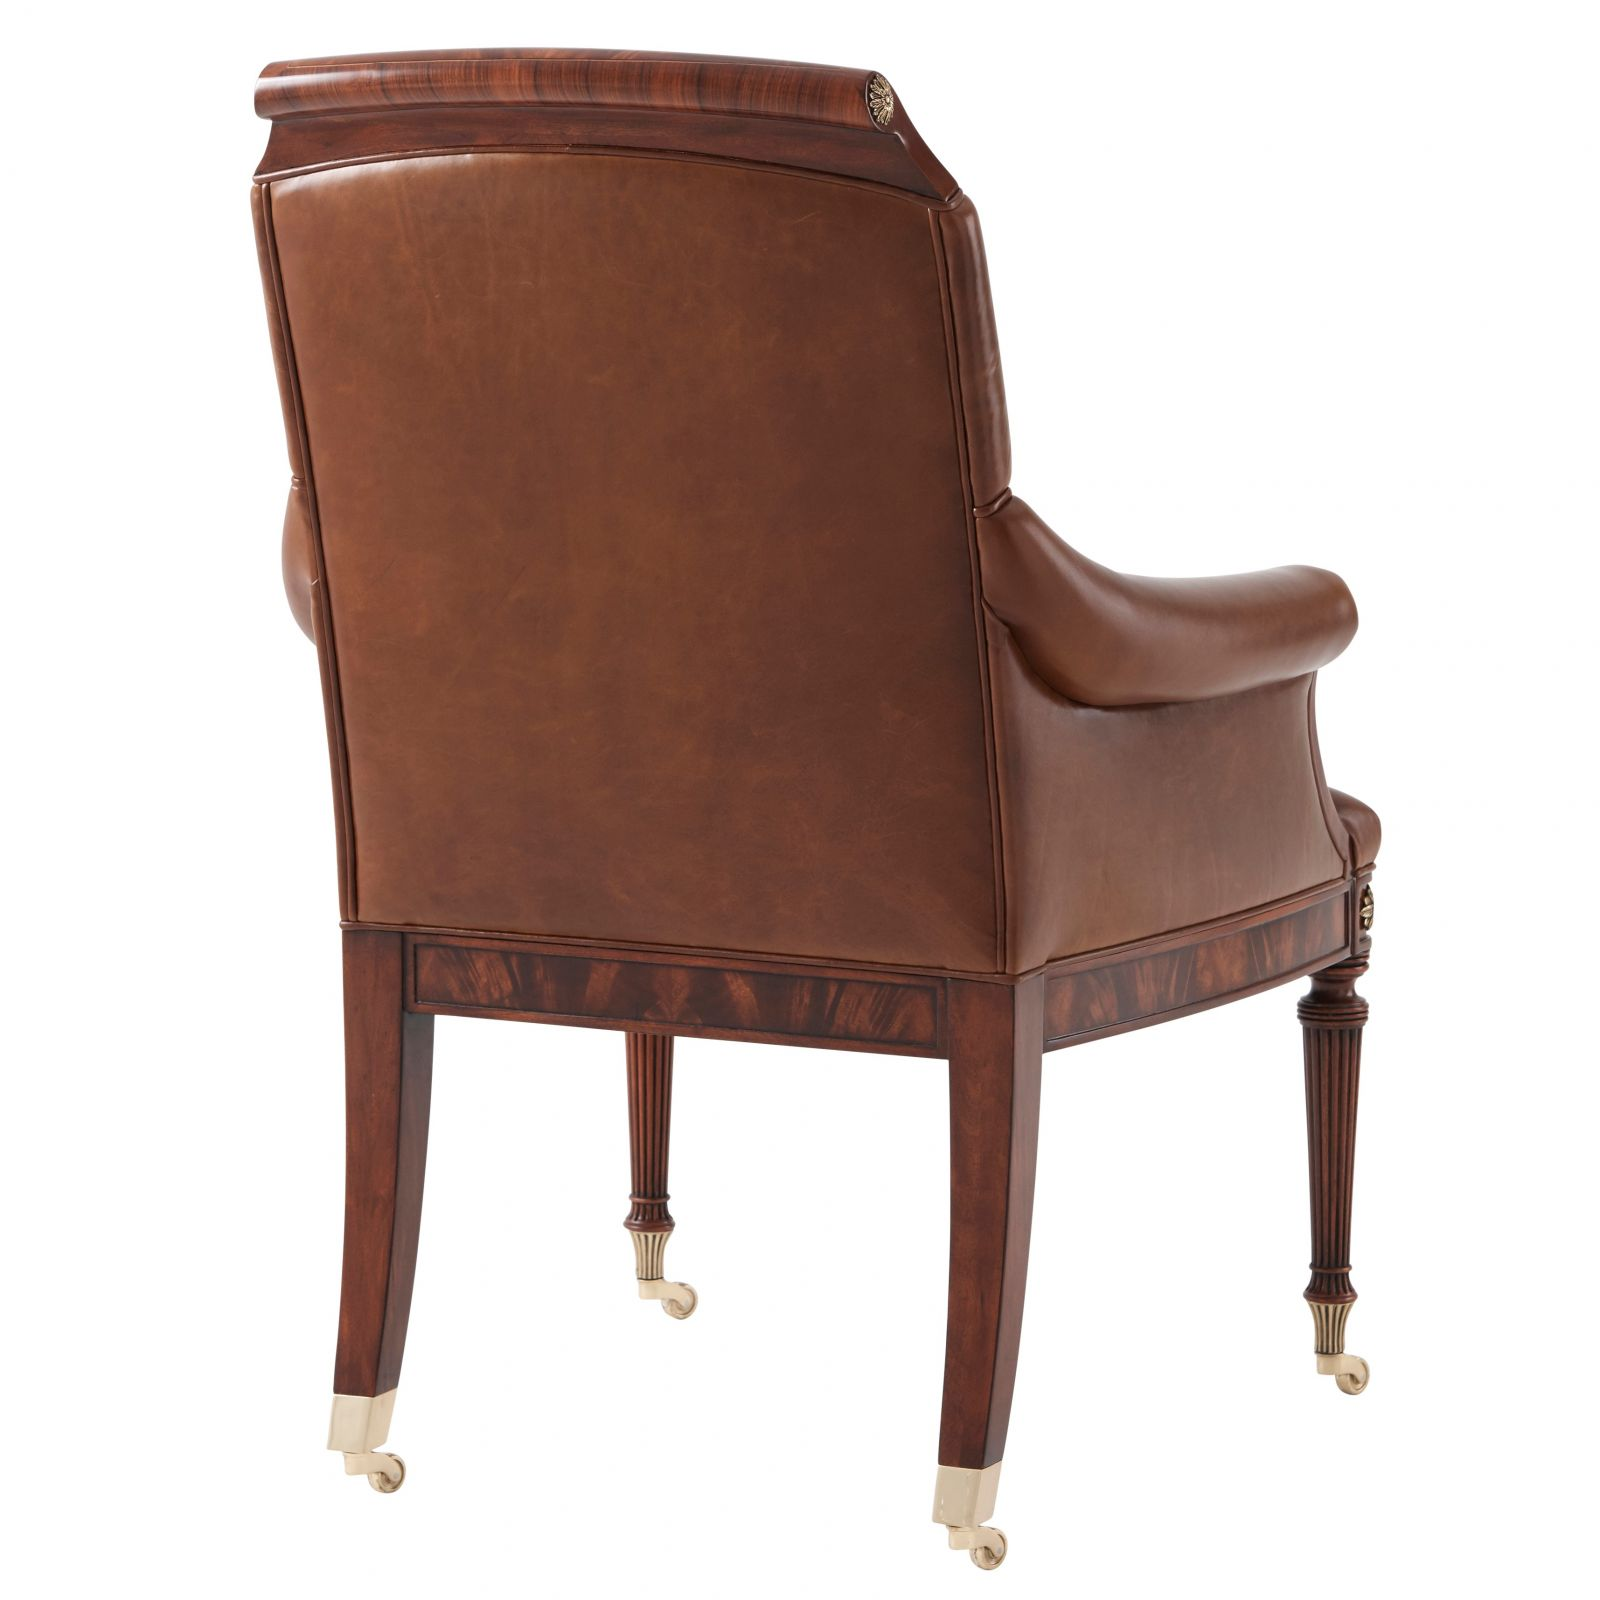 Regency style mahogany desk chair with brass accents